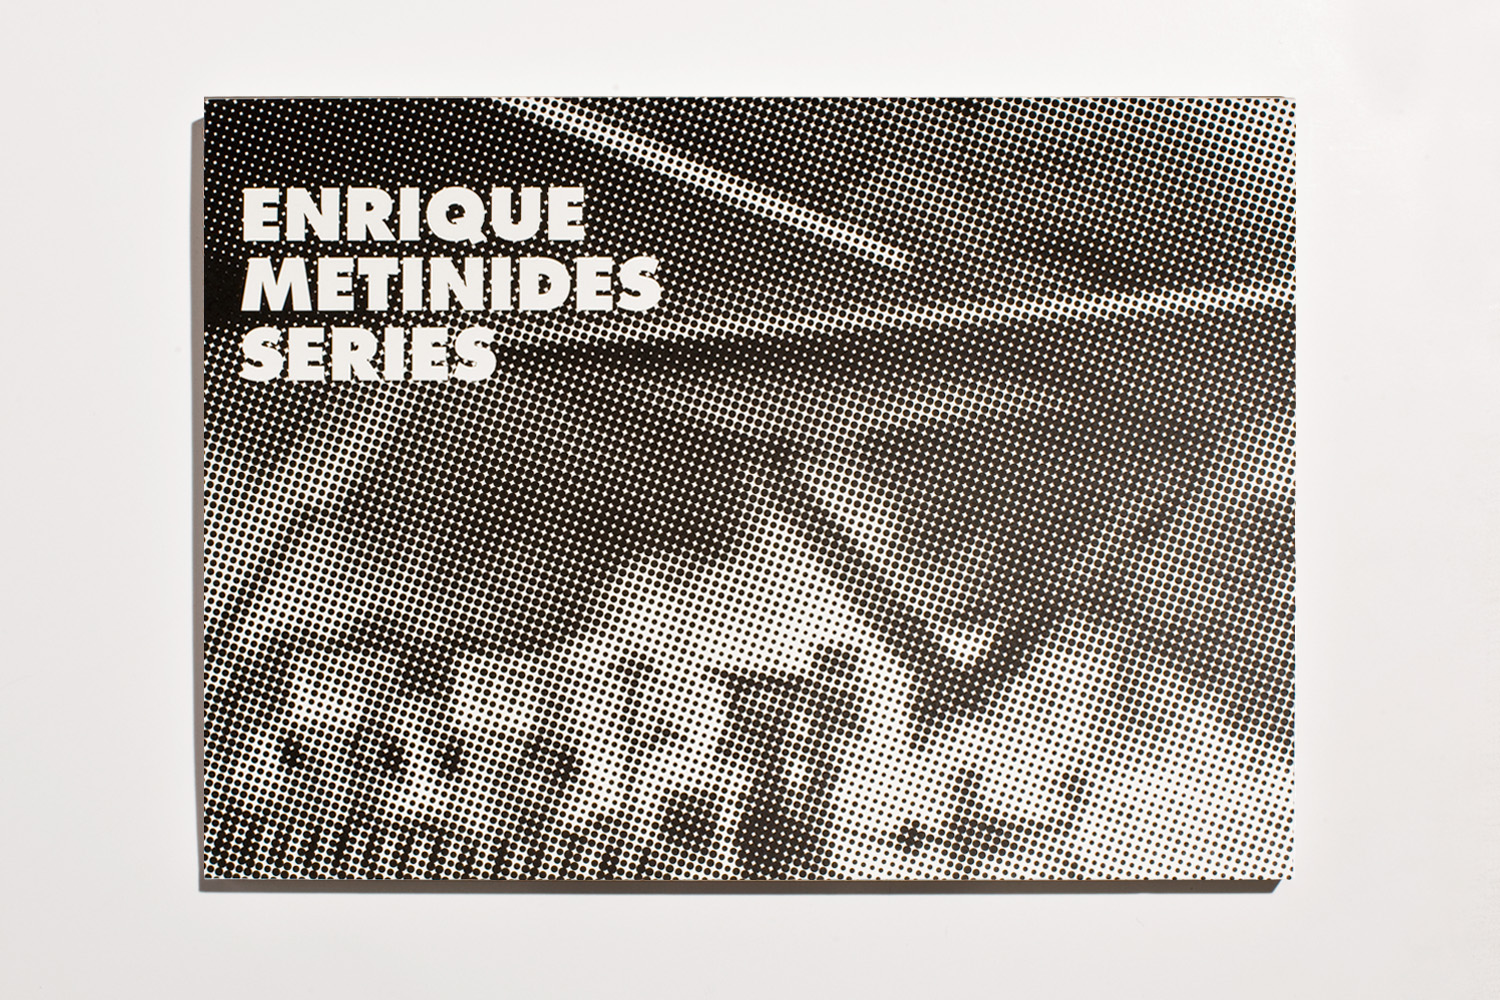 Series by Enrique Metinides, selected by Doug Rickard, photographer, publisher and editor of American Suburb X